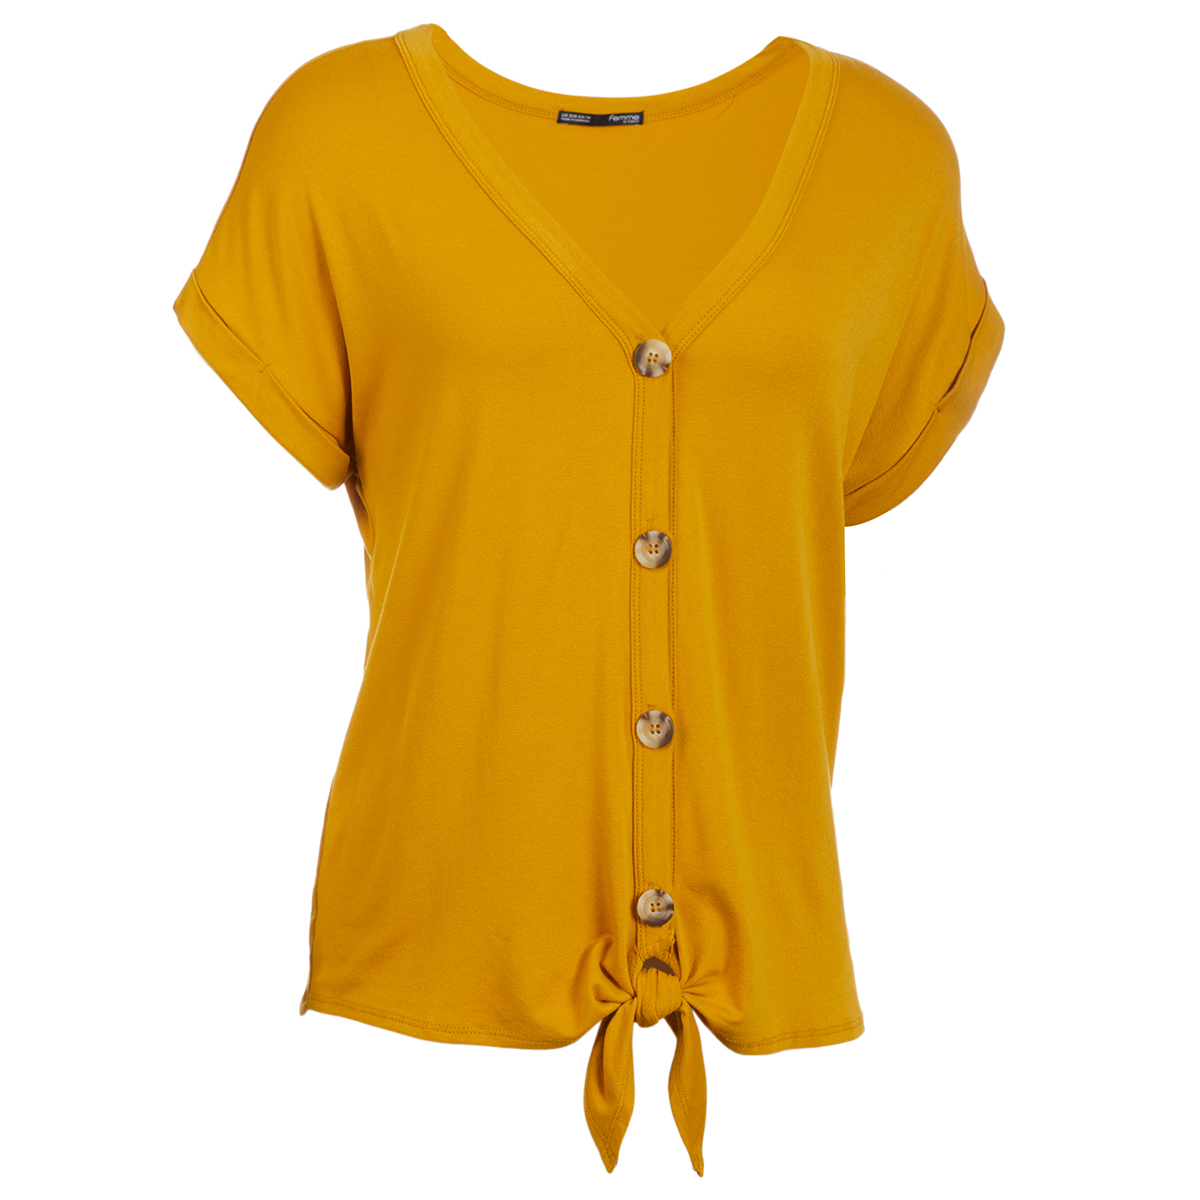 Femme Women's Short-Sleeve Button Down Knot Front Knit Tee - Yellow, L